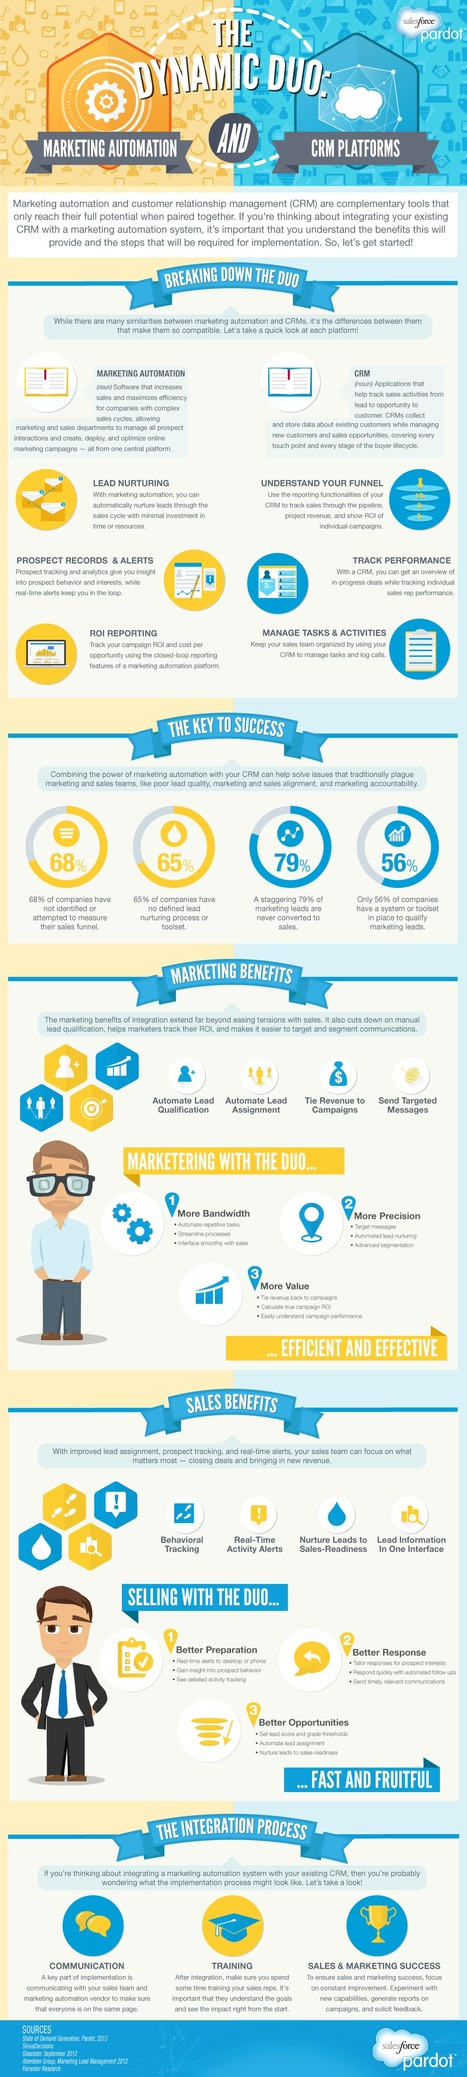 Marketing Automation & Your CRM #infographic - Pardot | #TheMarketingAutomationAlert | The MarTech Digest | Scoop.it